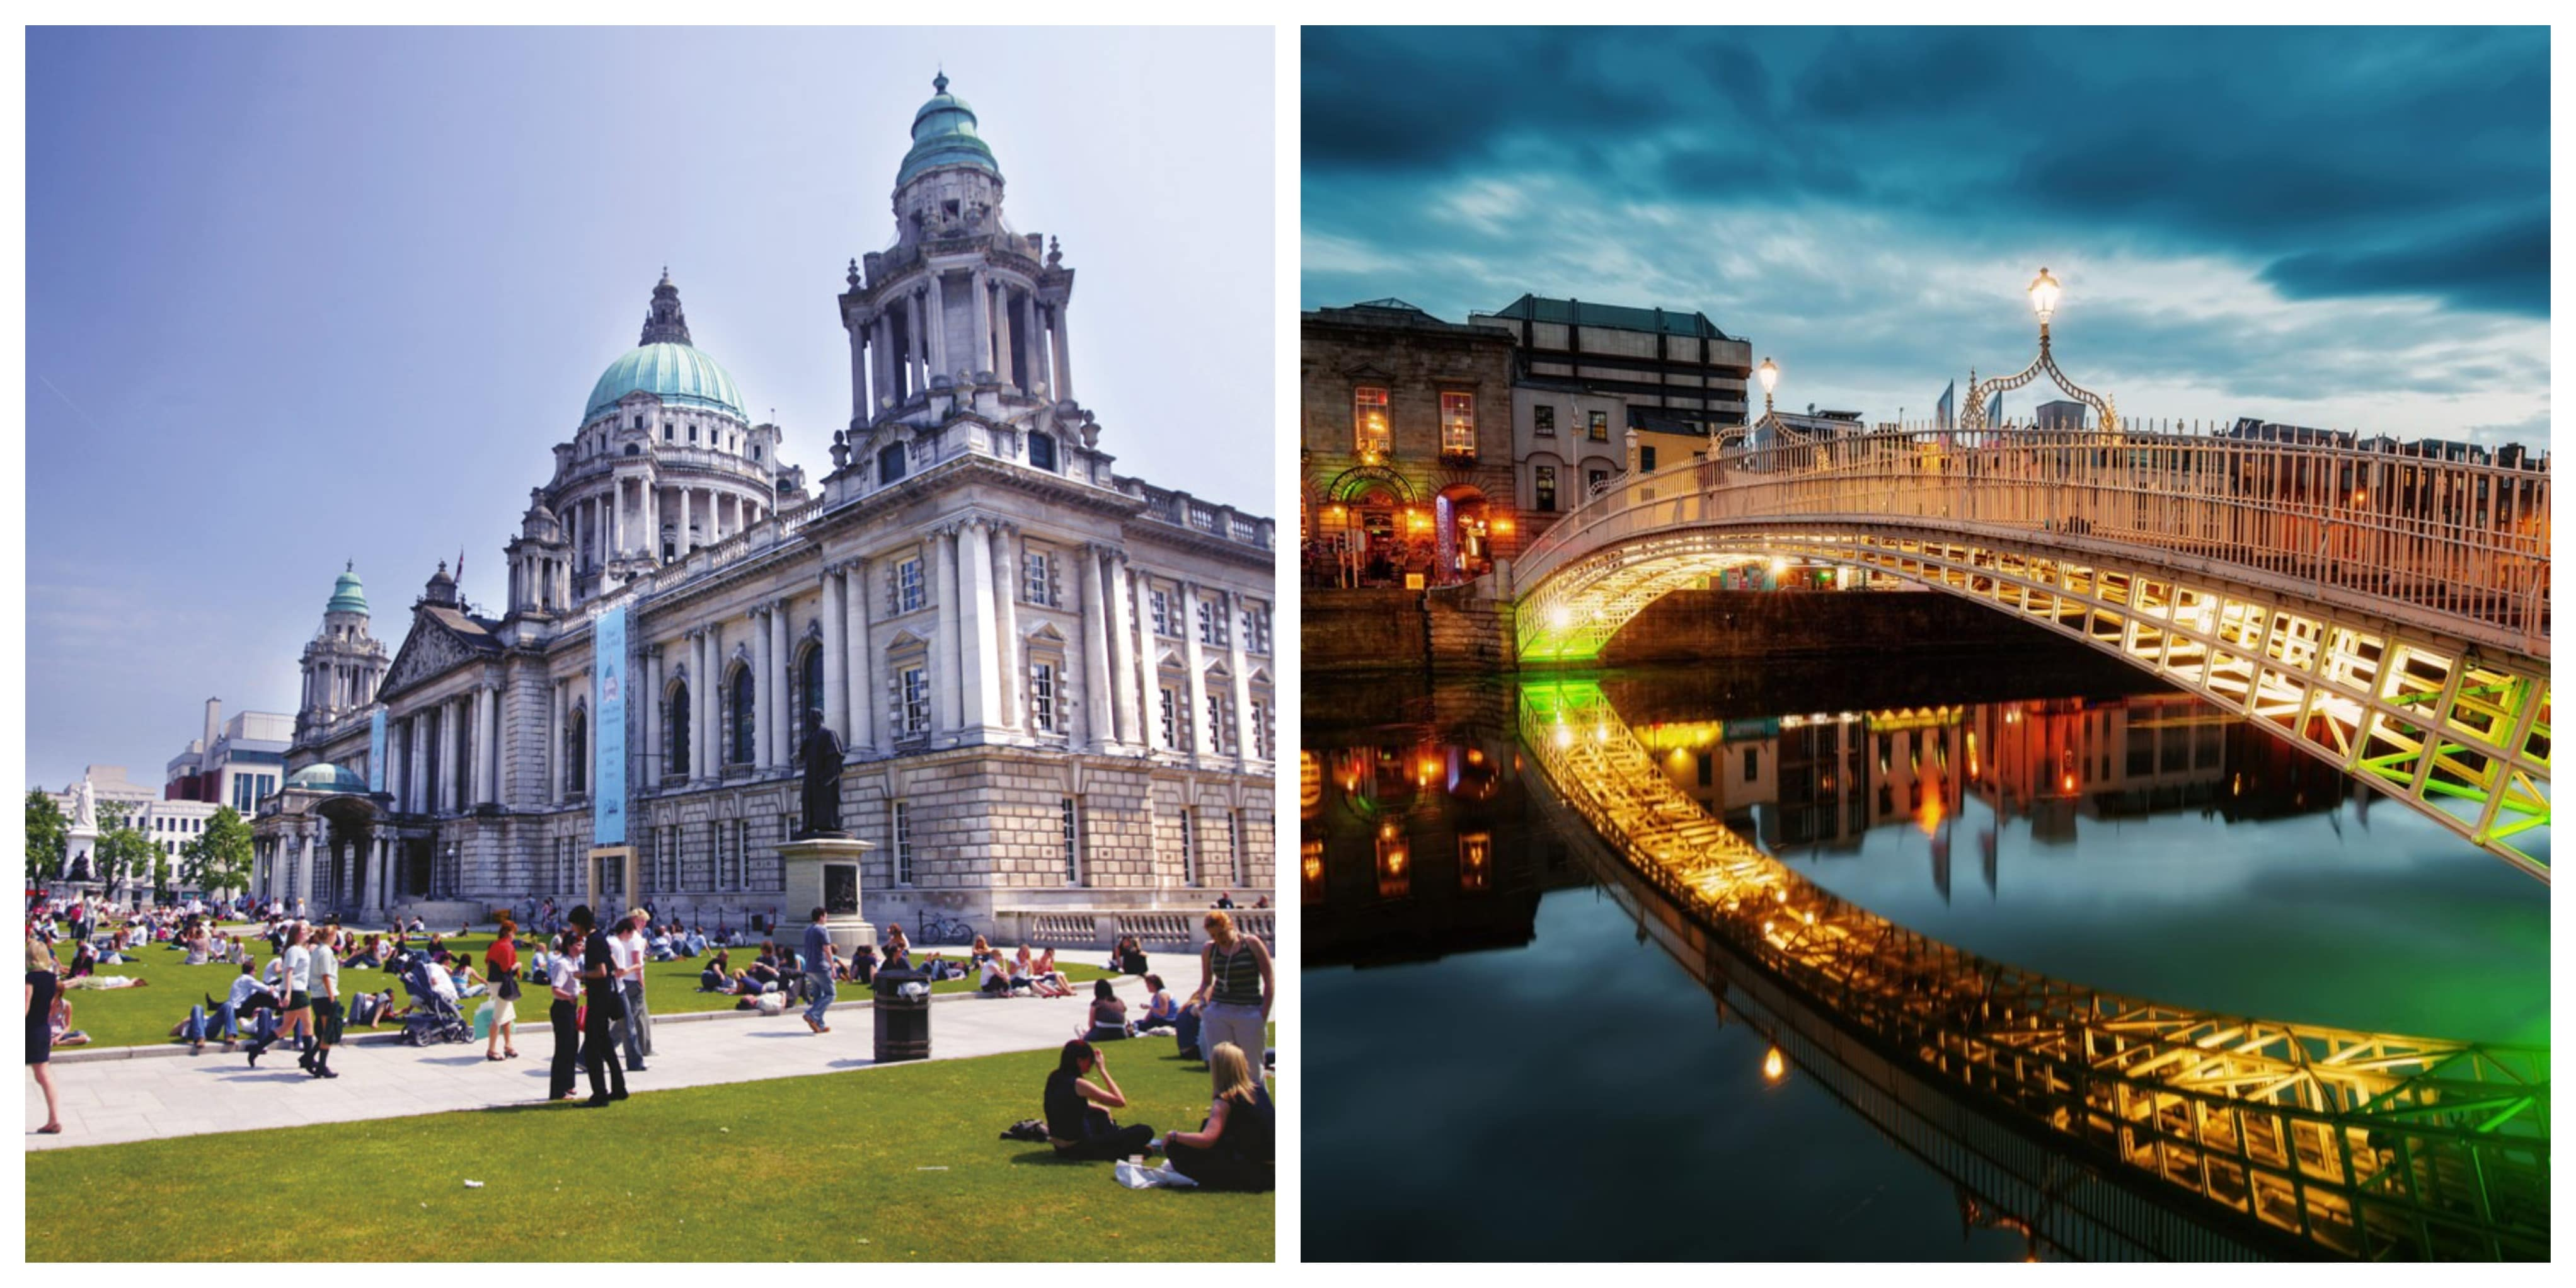 Northern Ireland vs. Republic of Ireland: Which place is Better?